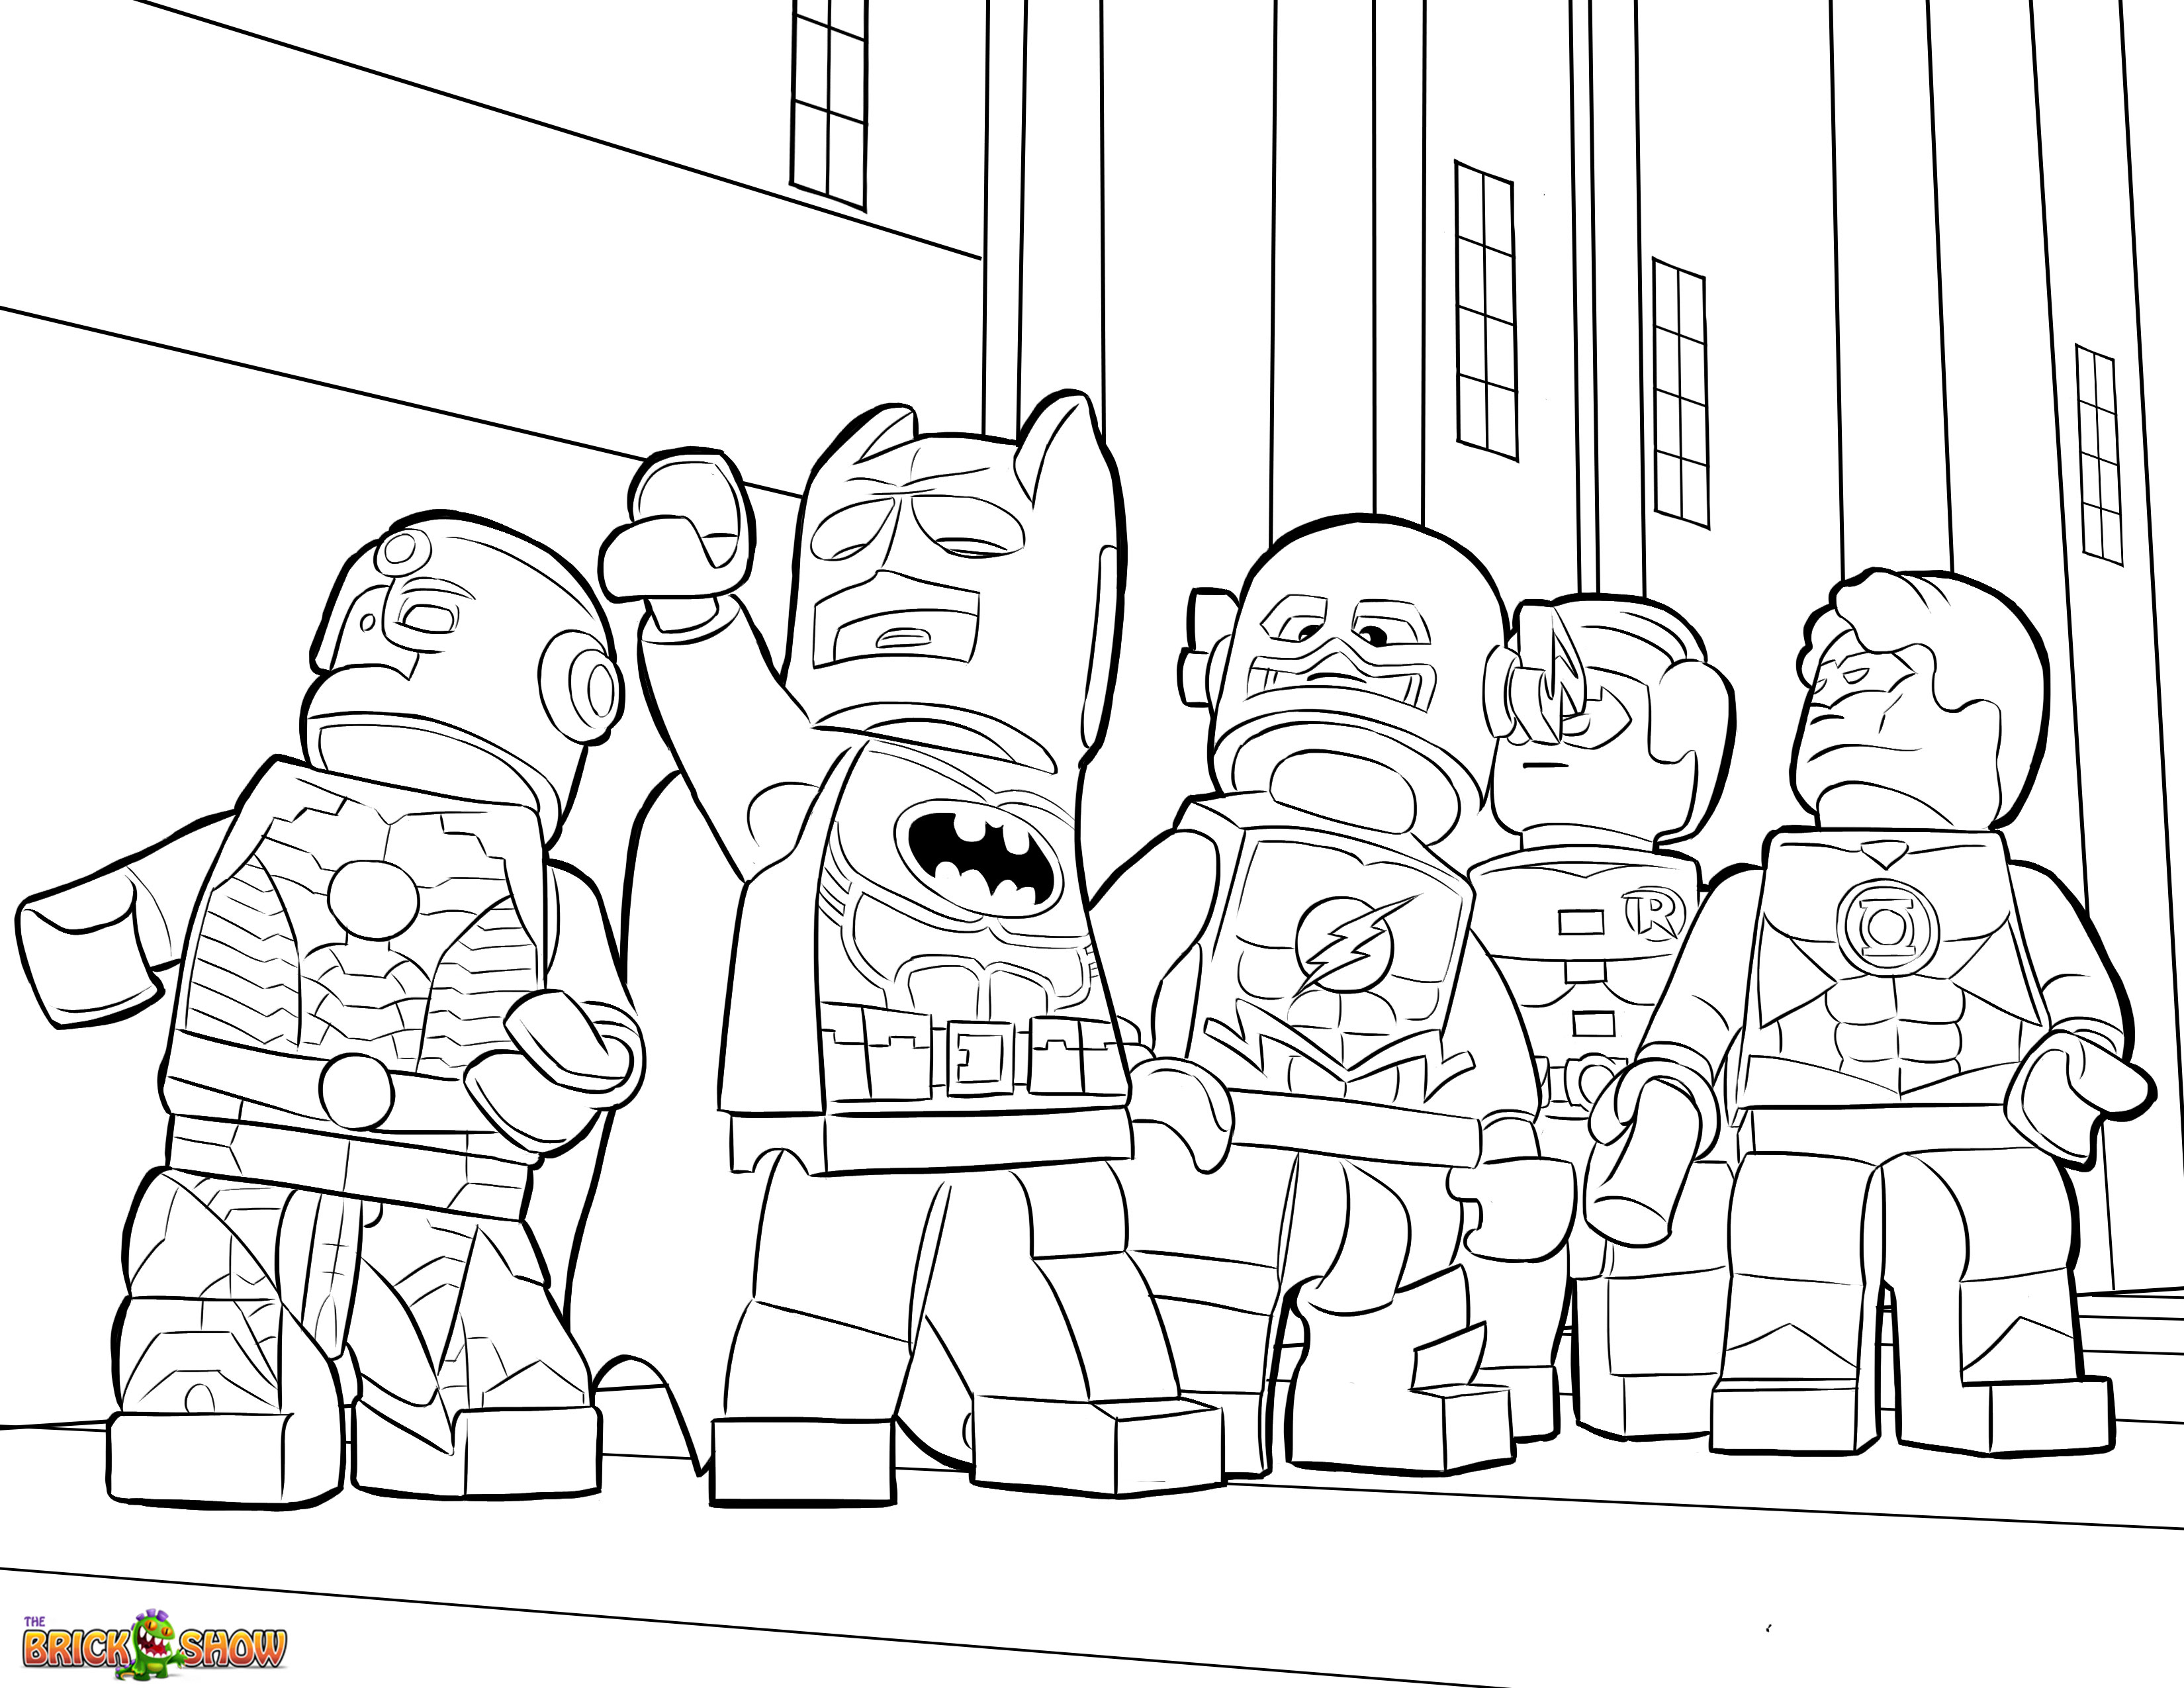 3300x2550 Lego Justice League Coloring Page, Printable Sheet